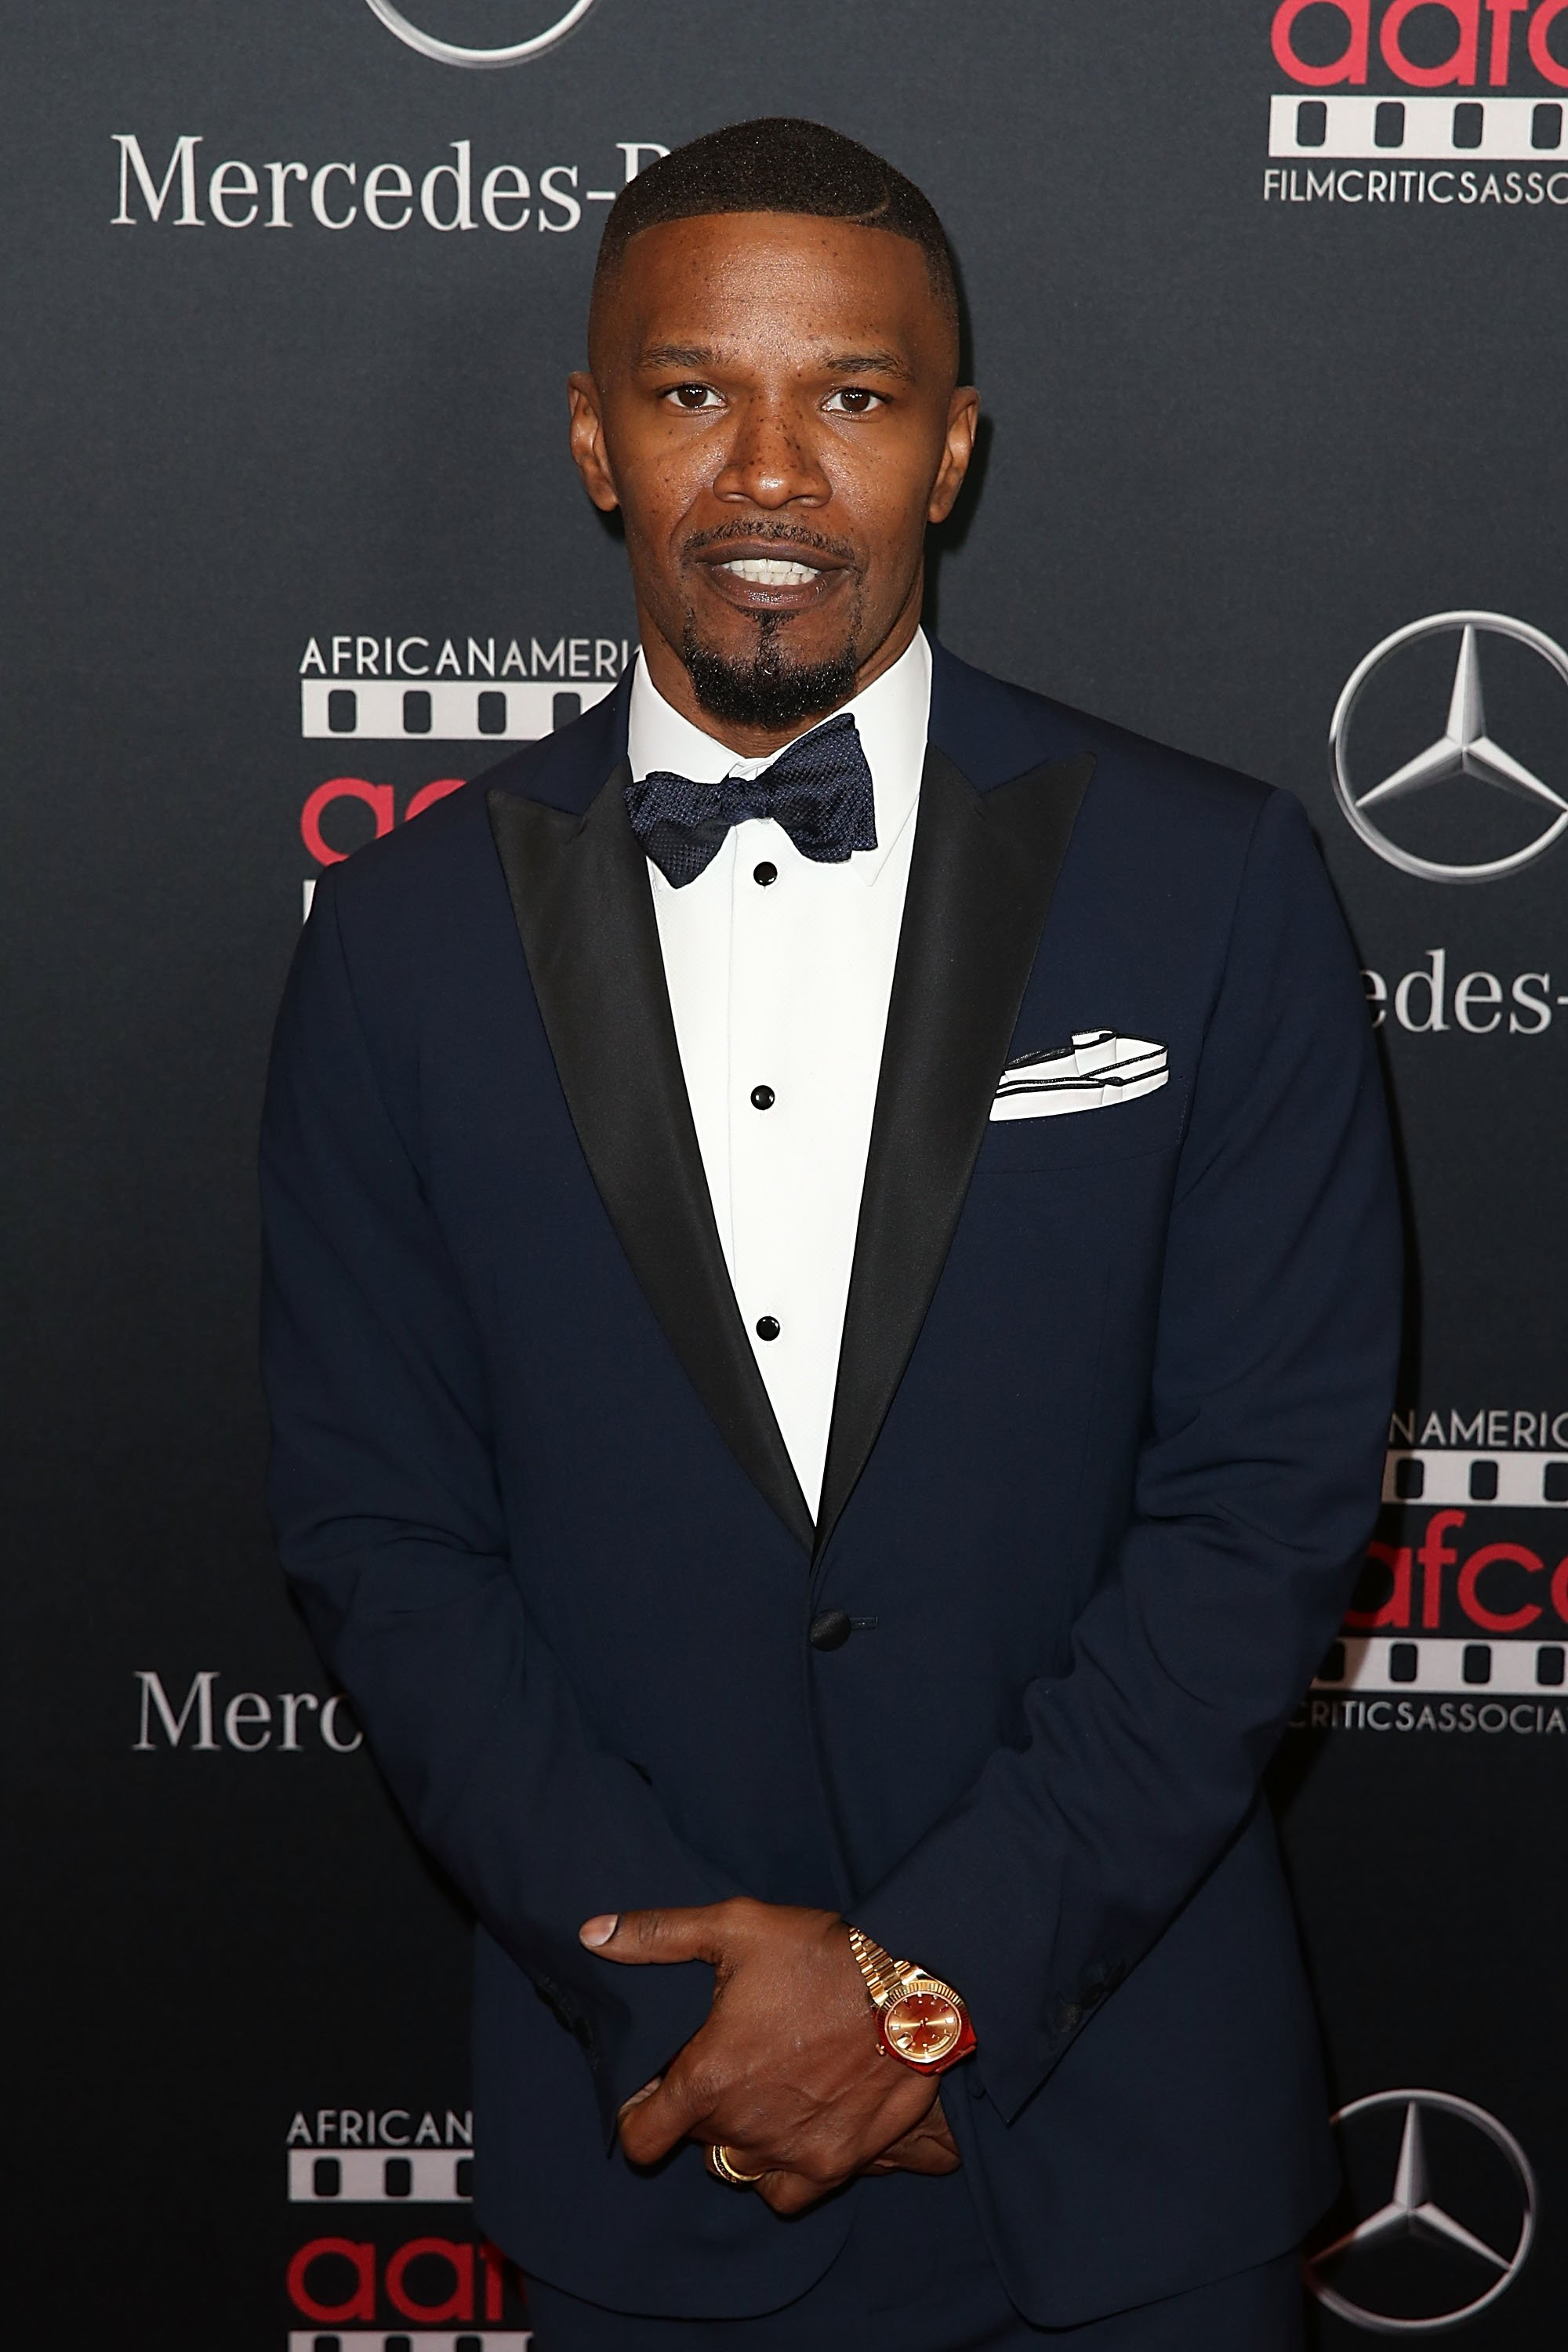 Jamie Foxx attends the Mercedes-Benz and African American Film Critics Association Oscar viewing party in Los Angeles, California on February 28, 2016 | Photo: Getty Images